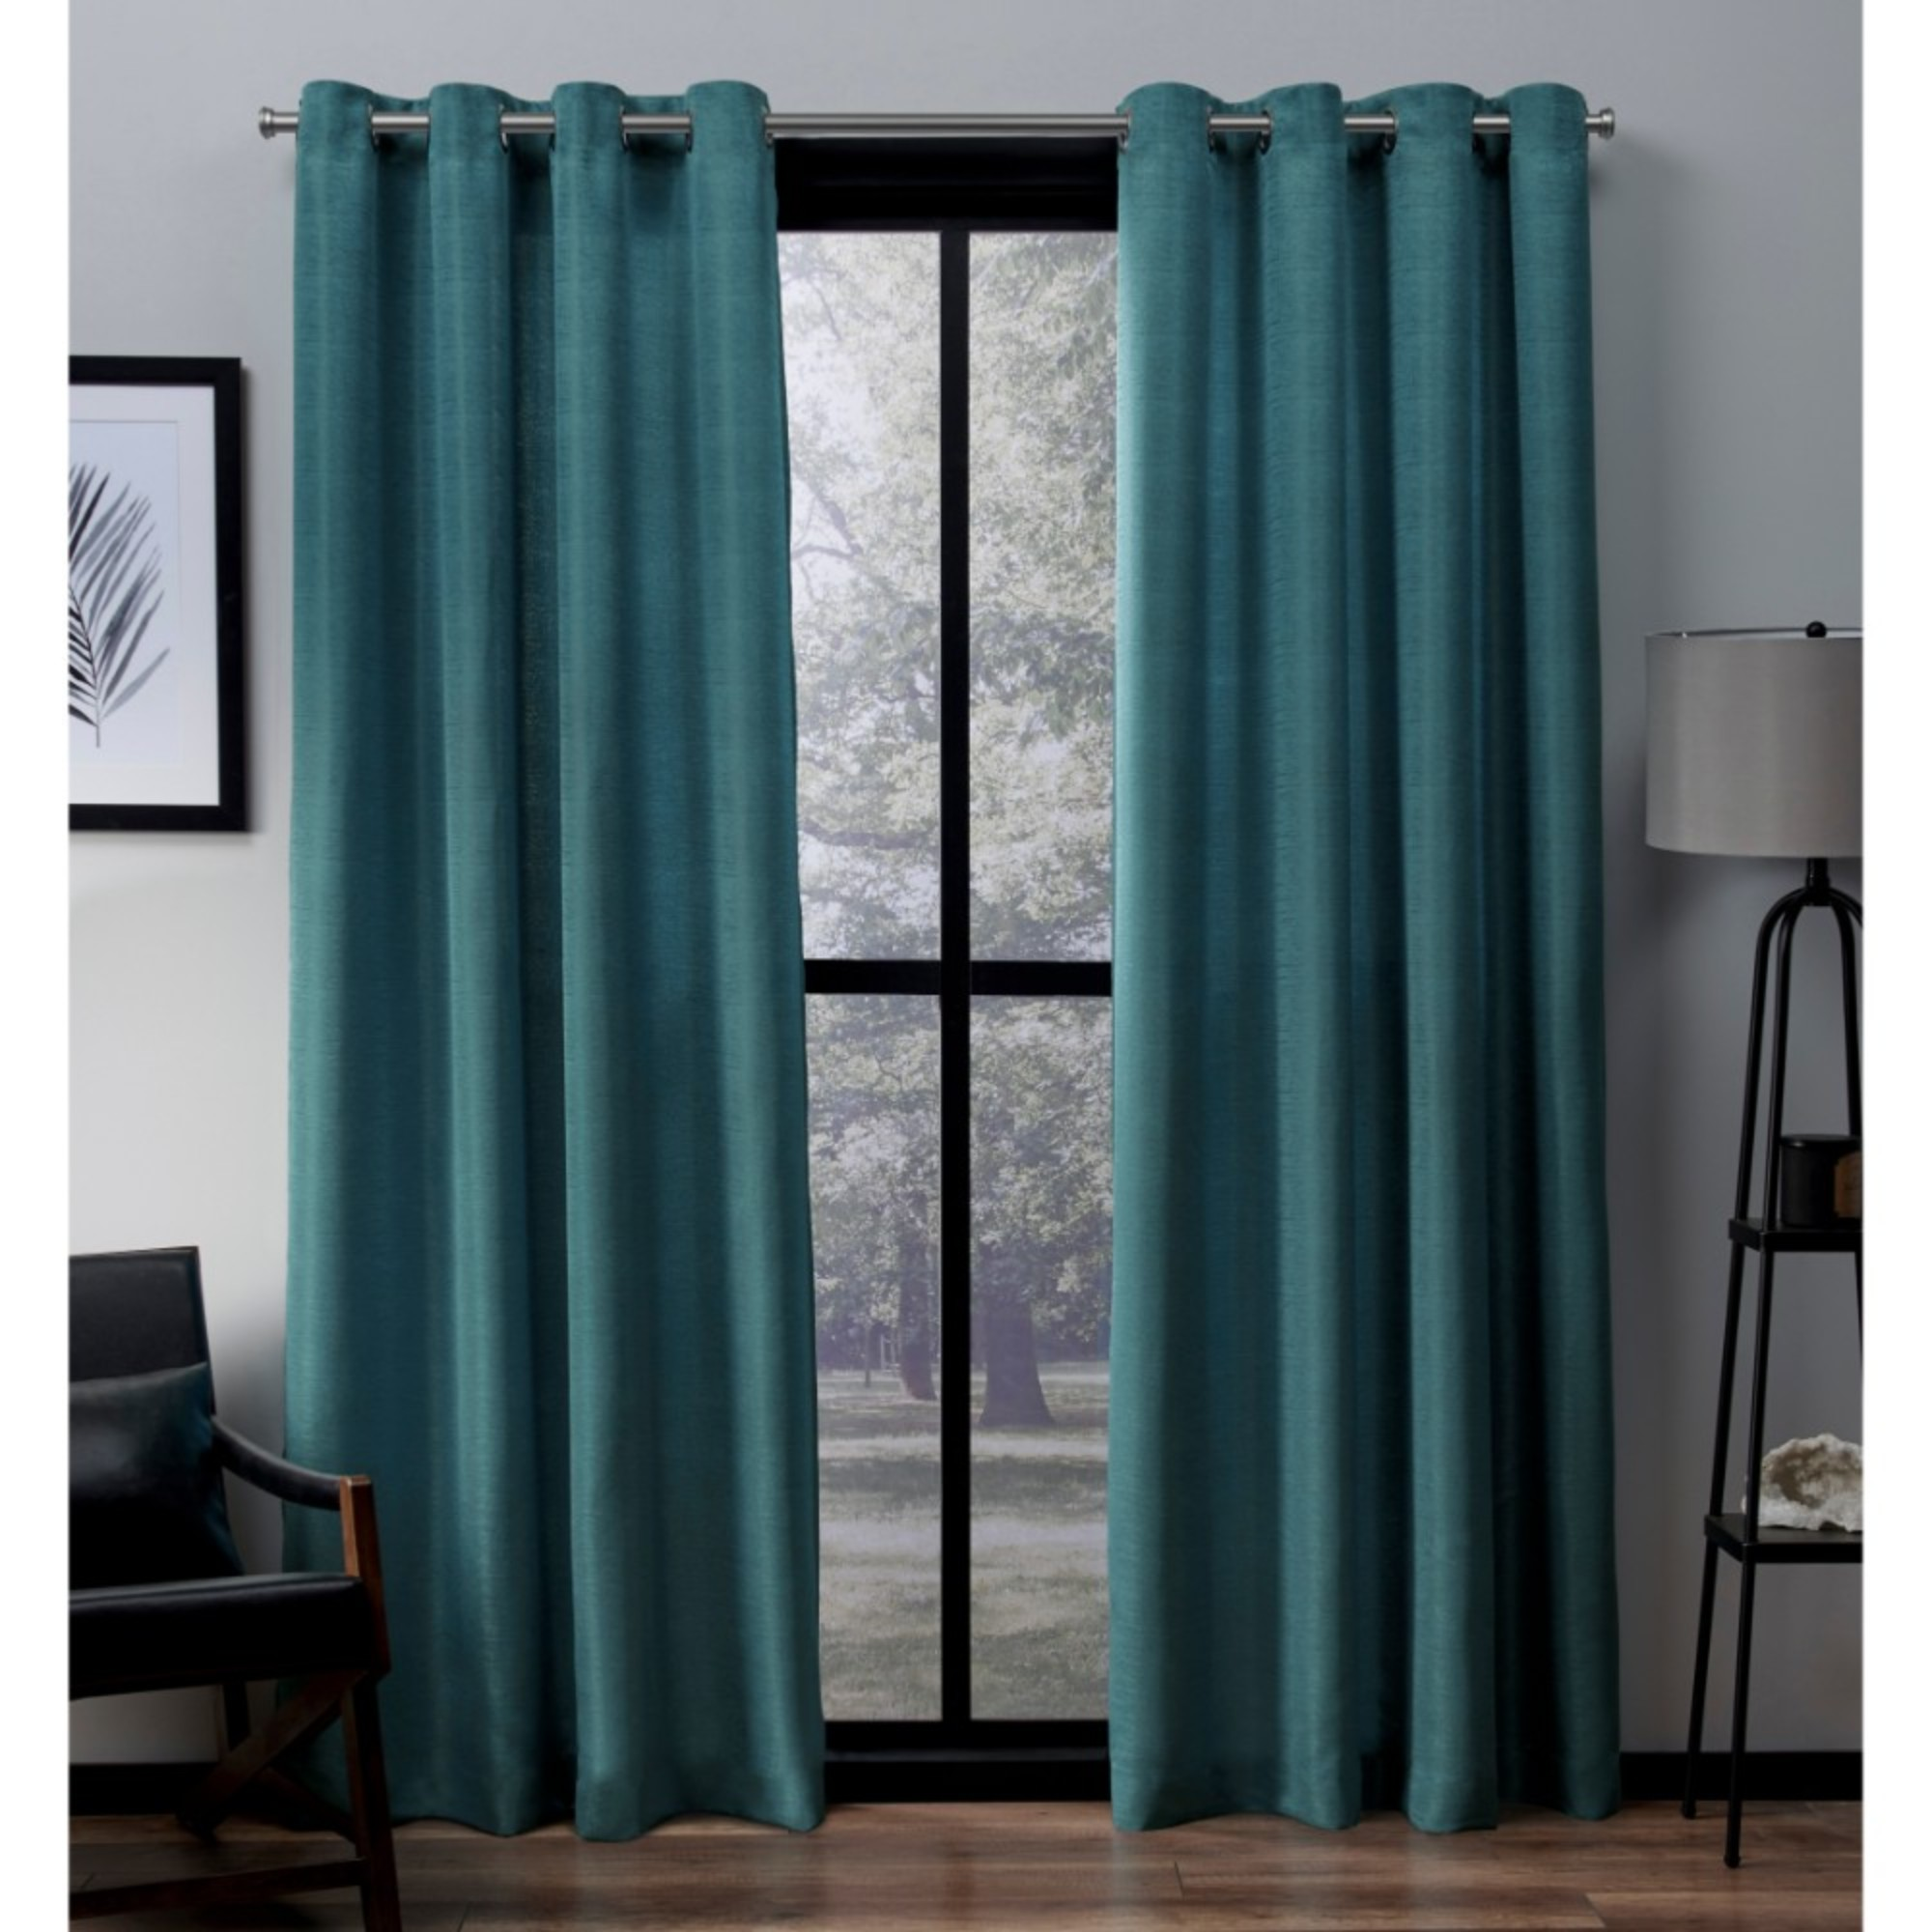 Faux Silk Curtains Exclusive Home Curtains 2 Pack Virenze Faux Silk Grommet Top Curtain Panels